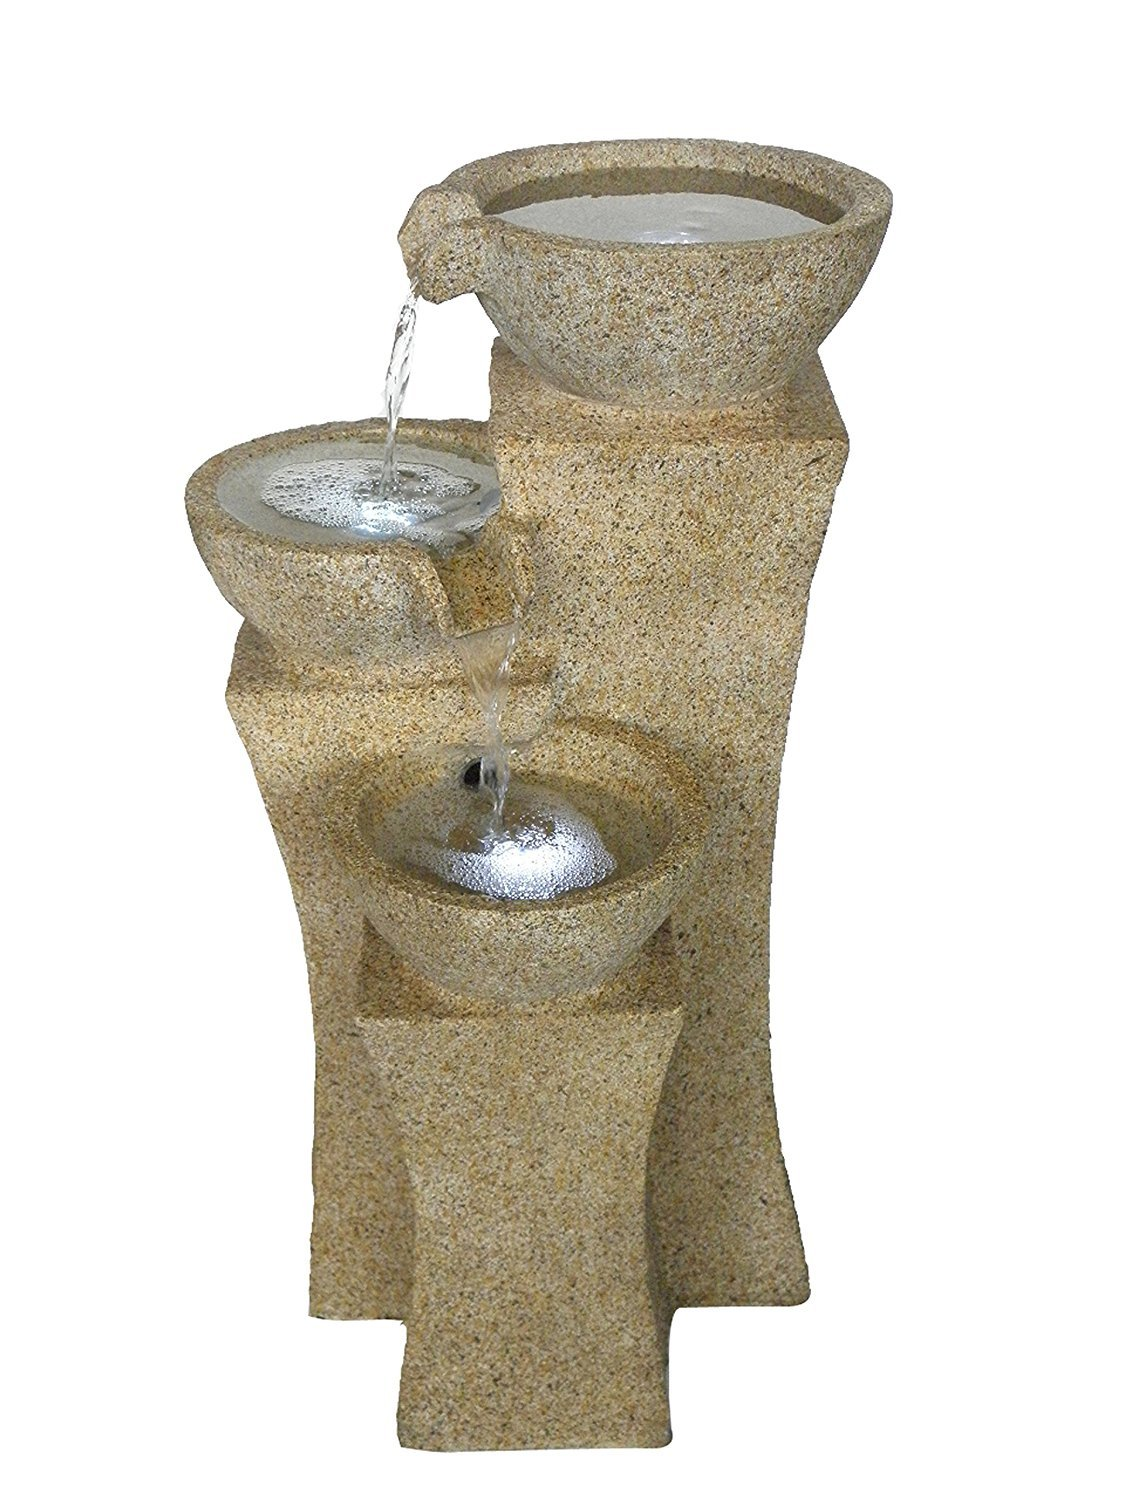 The Veneto - 26'' Three Bowl Cascading Waterfall Rock Fountain w/3 LED - Light Granite. Elegant water feature perfect for your outdoor living space. HF-B08-26L-LG by Harmony Fountains